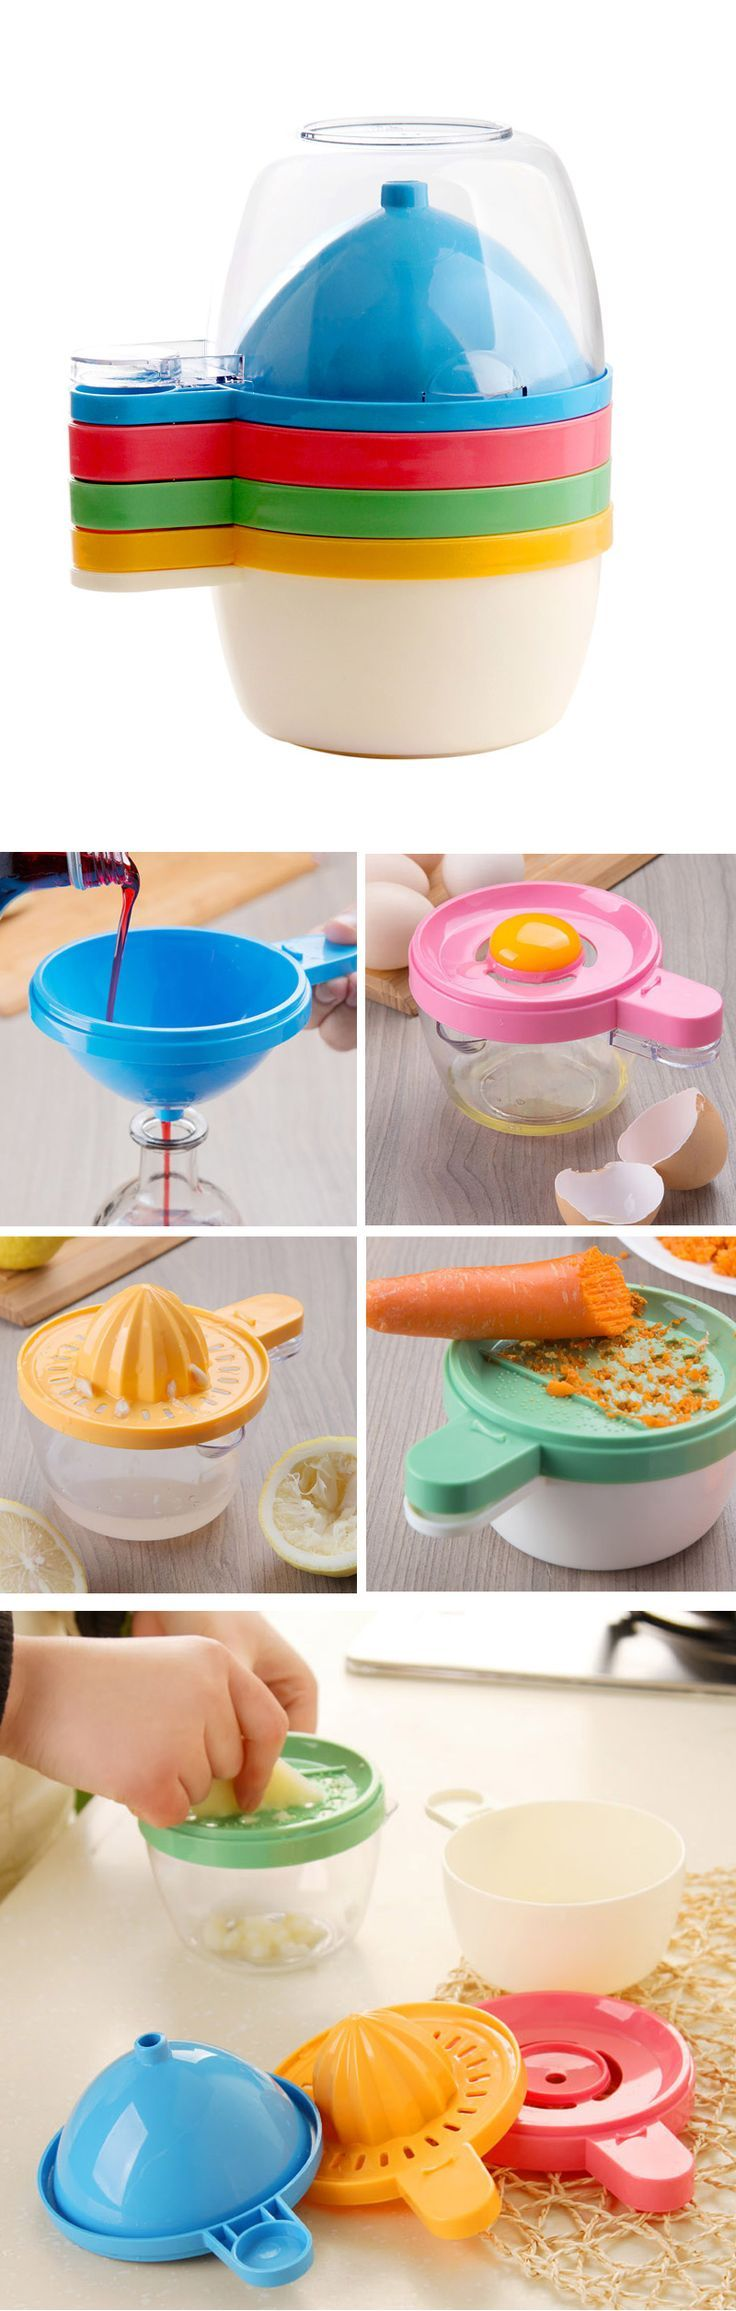 4 In 1 Kitchen Tools Funnel Grater Egg Separater And Juicer Kitchen Tools Kitchen Gadgets Cooking Gadgets